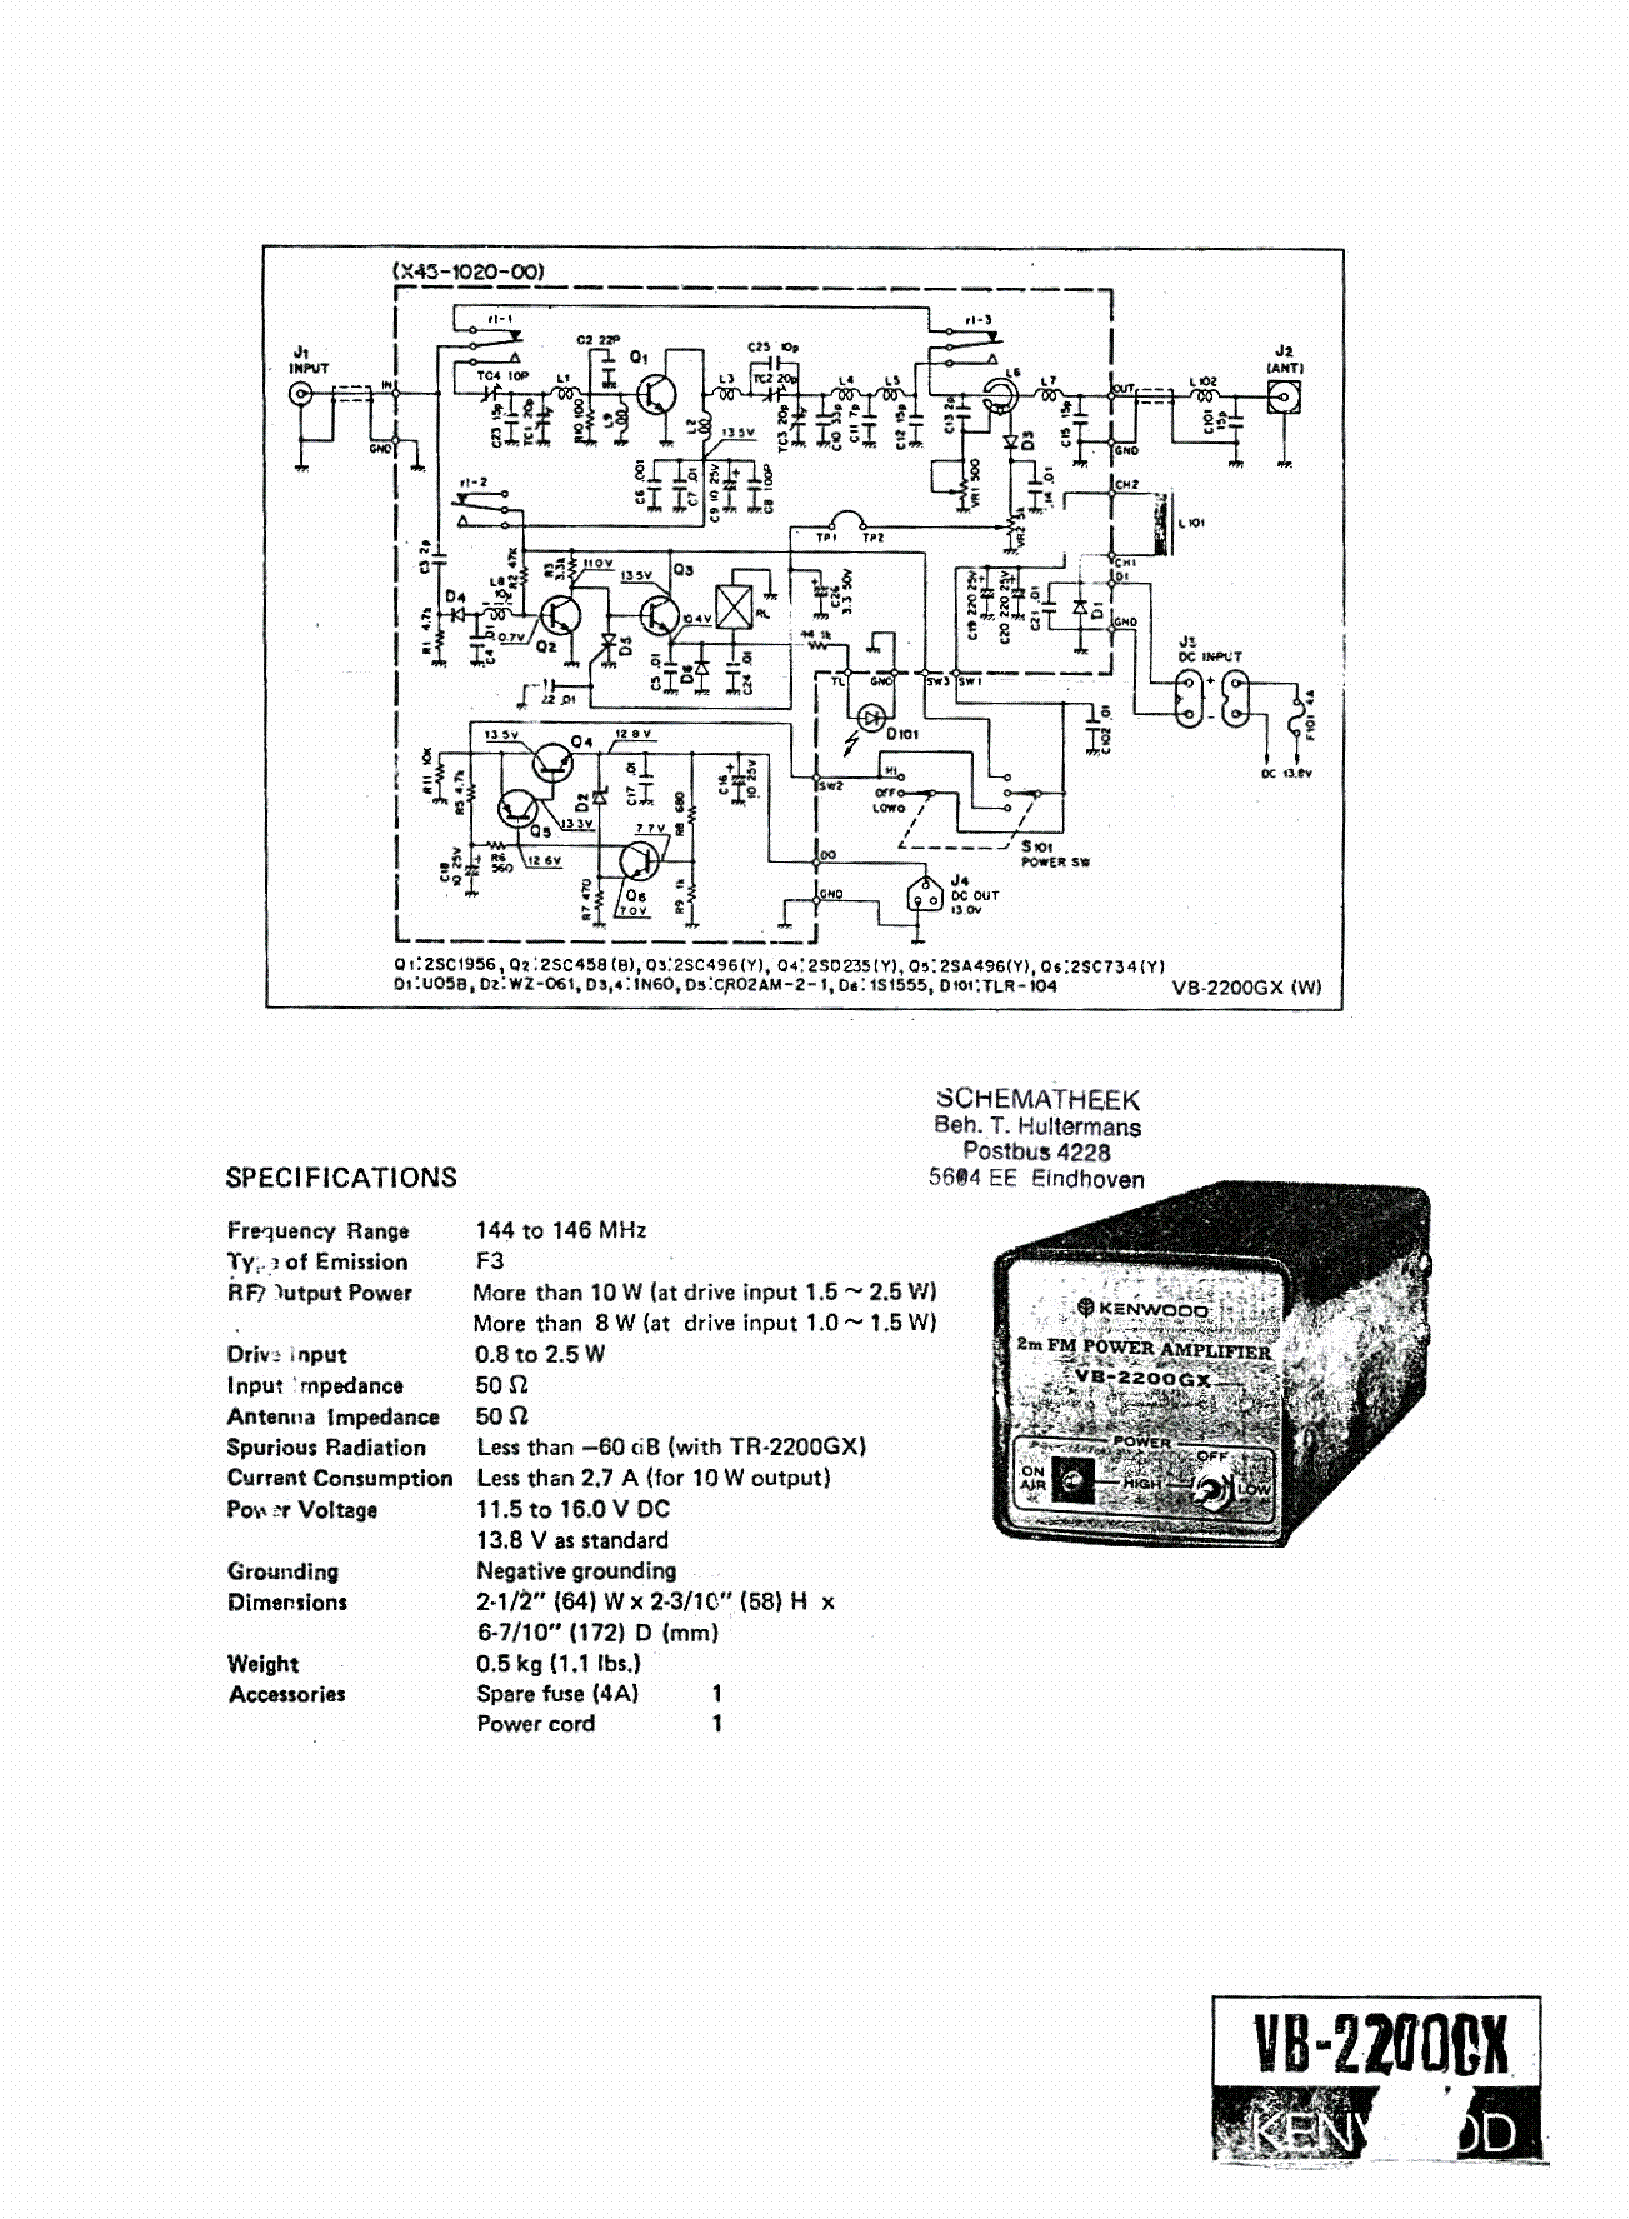 KENWOOD VB-2200GX SCH Service Manual free download